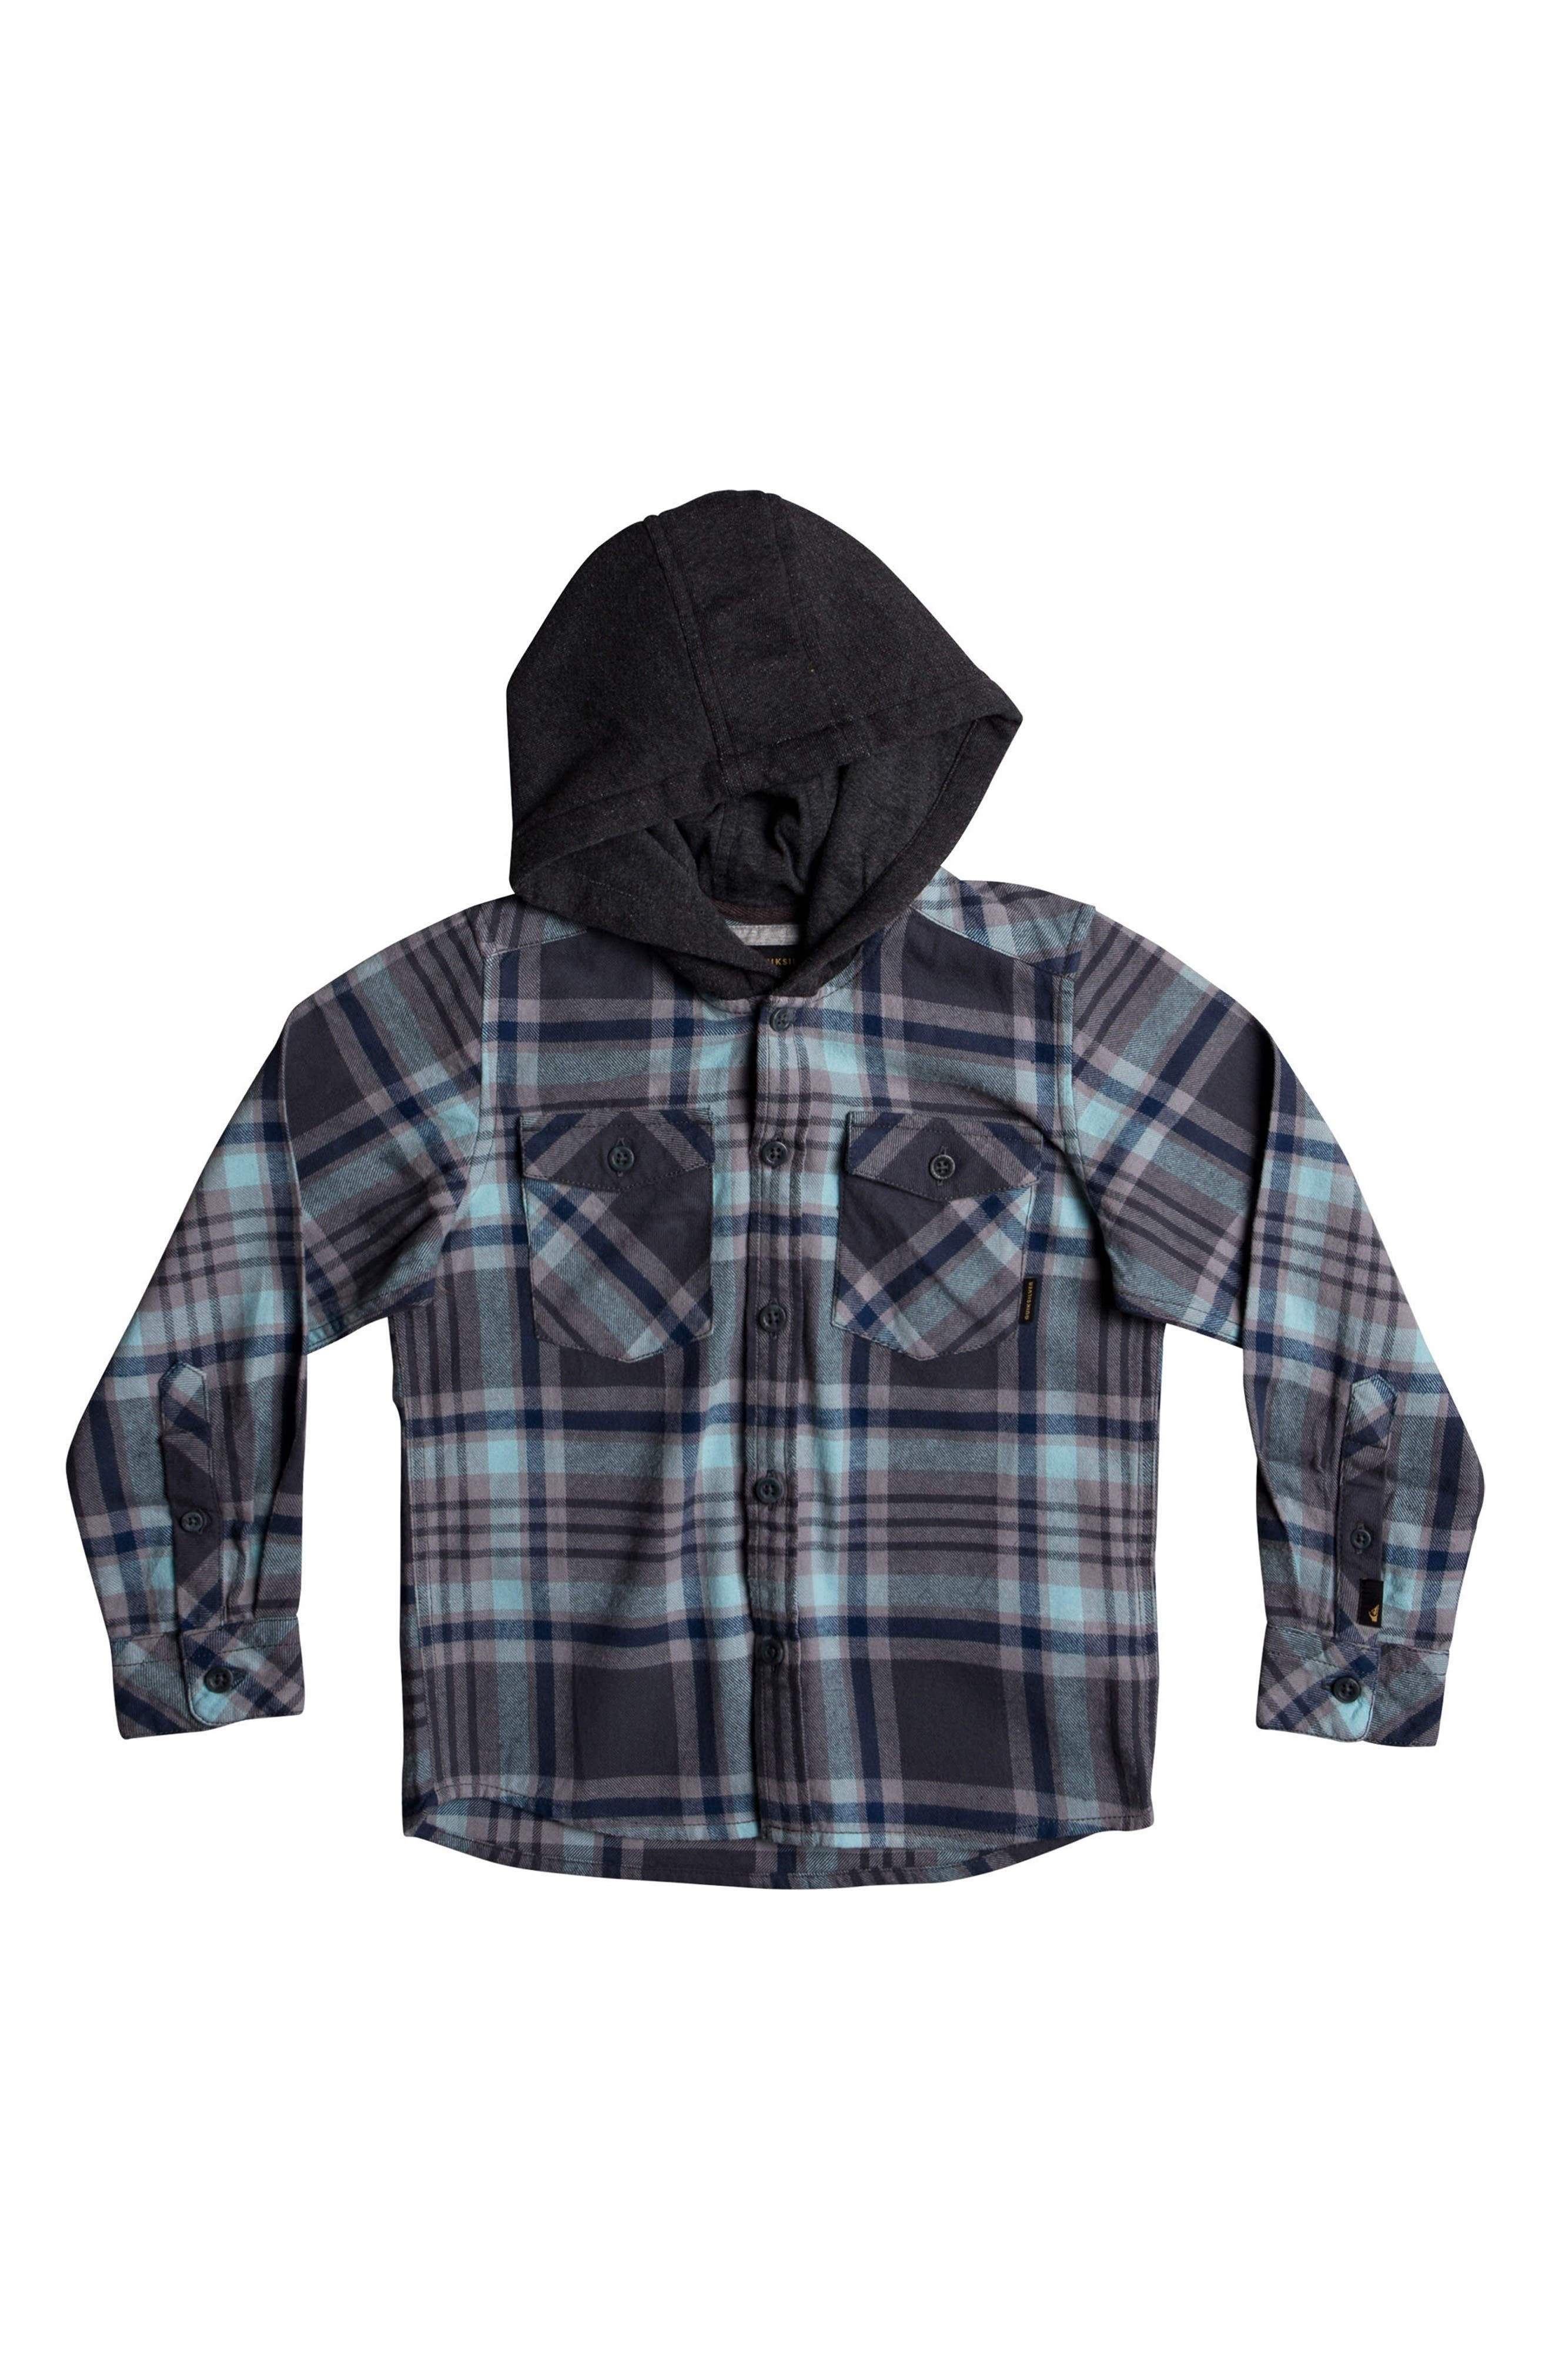 Main Image - Quiksilver Hooded Plaid Flannel Shirt (Toddler Boys & Little Boys)